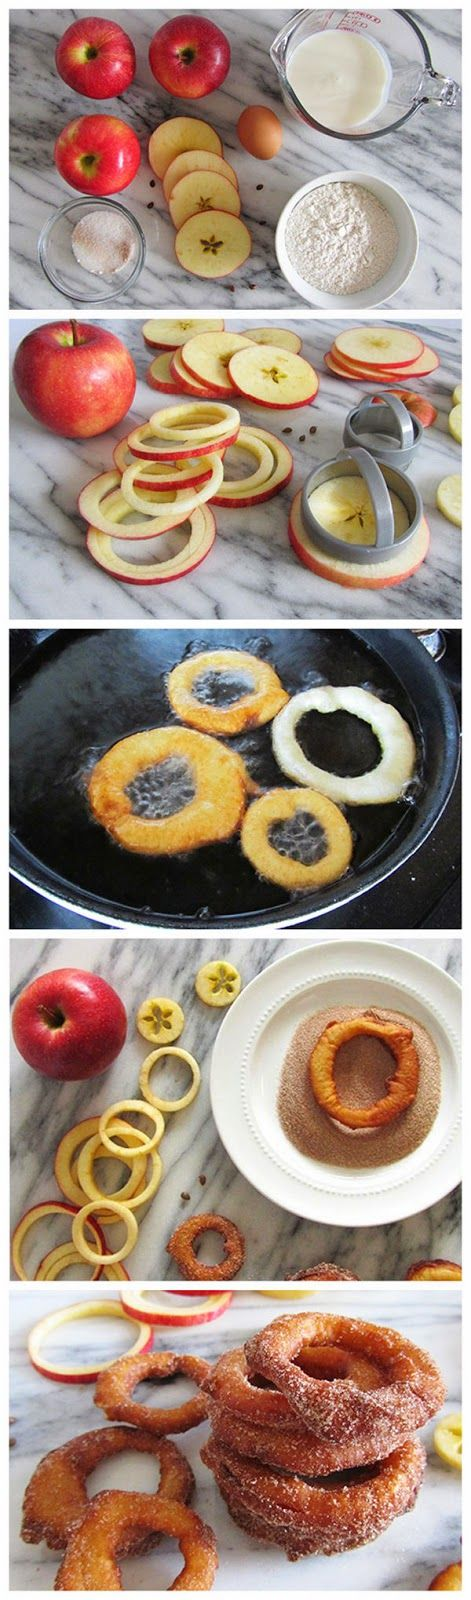 Cinnamon Apple Rings